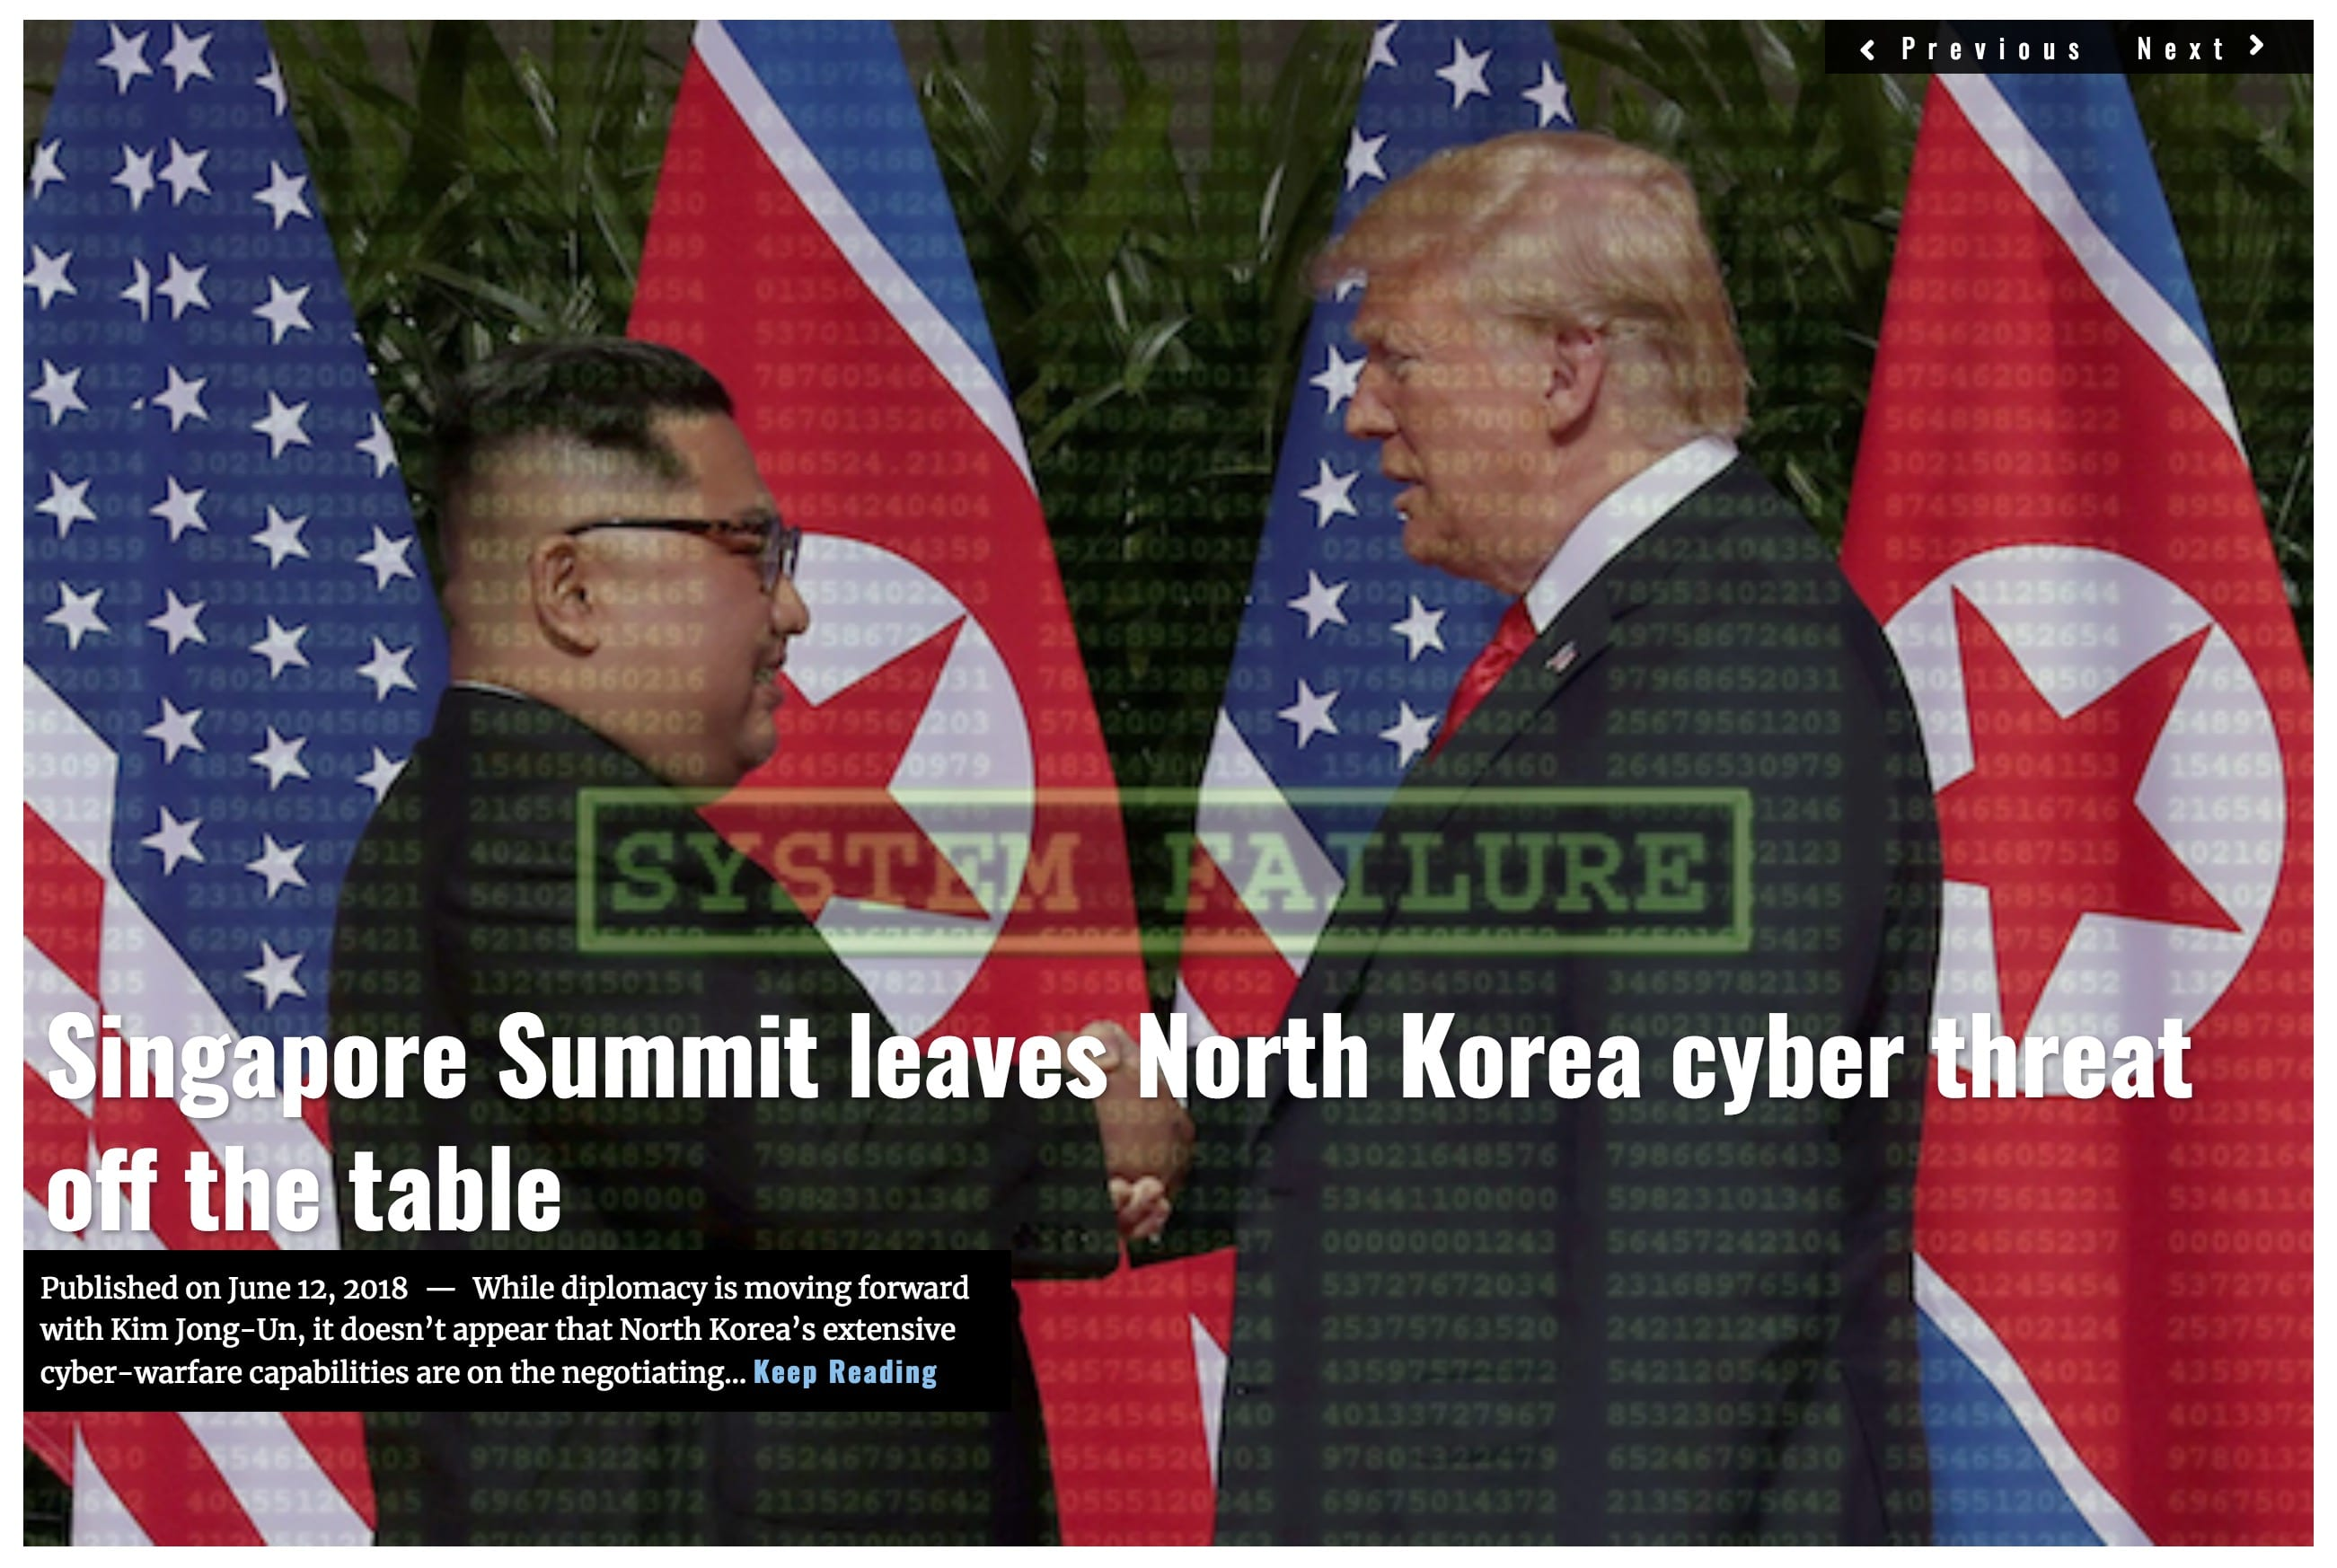 image Lima Charlie News Headline Singapore Summit Cyber JUN 12 2018